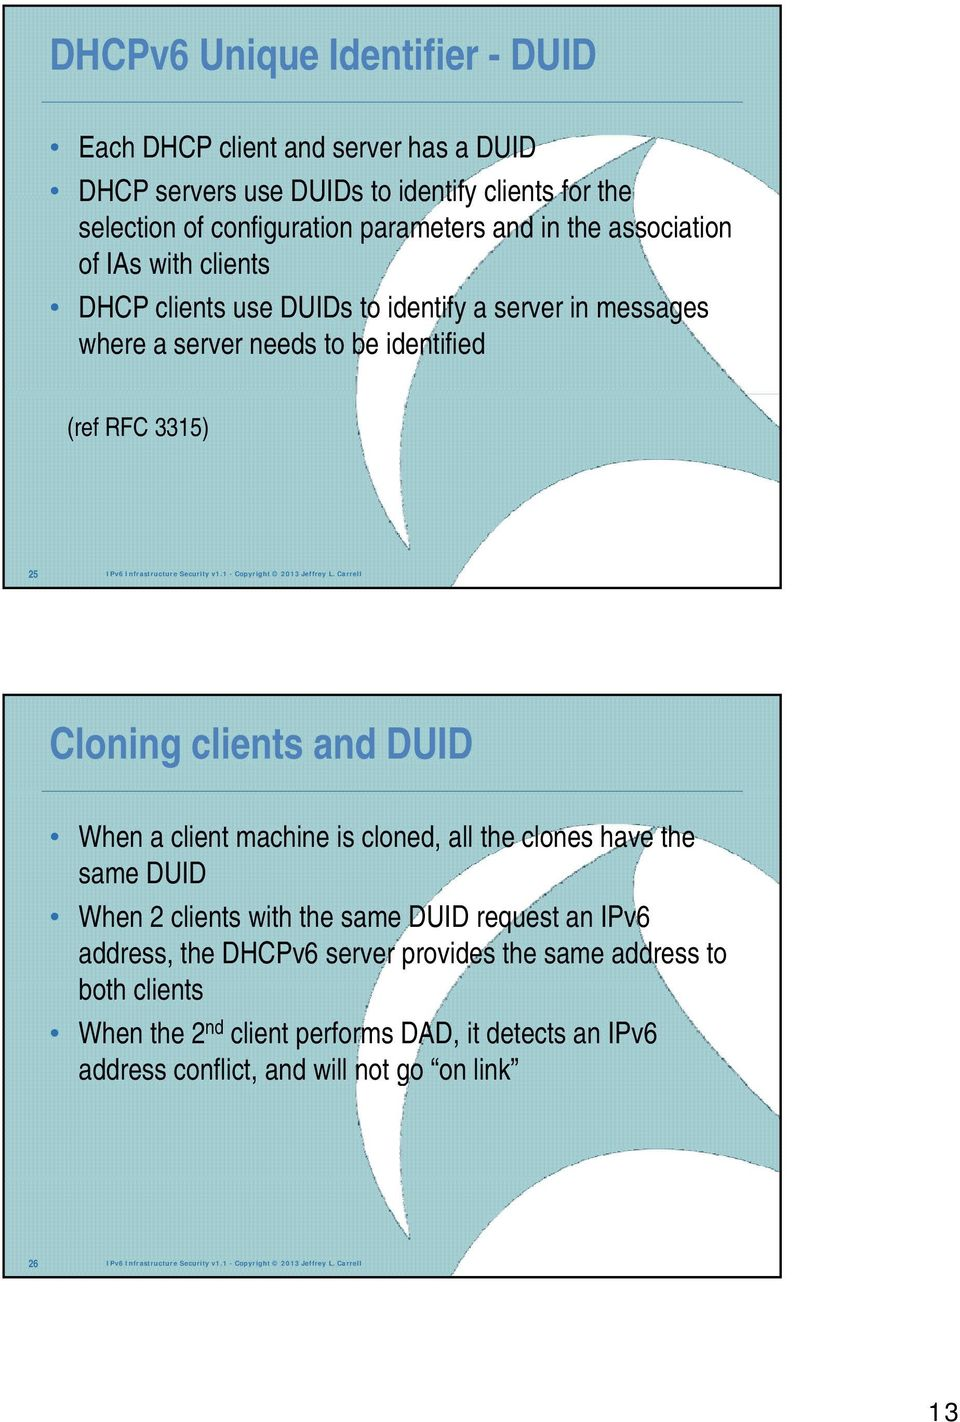 Carrell Cloning clients and DUID When a client machine is cloned, all the clones have the same DUID When 2 clients with the same DUID request an IPv6 address, the server provides the same